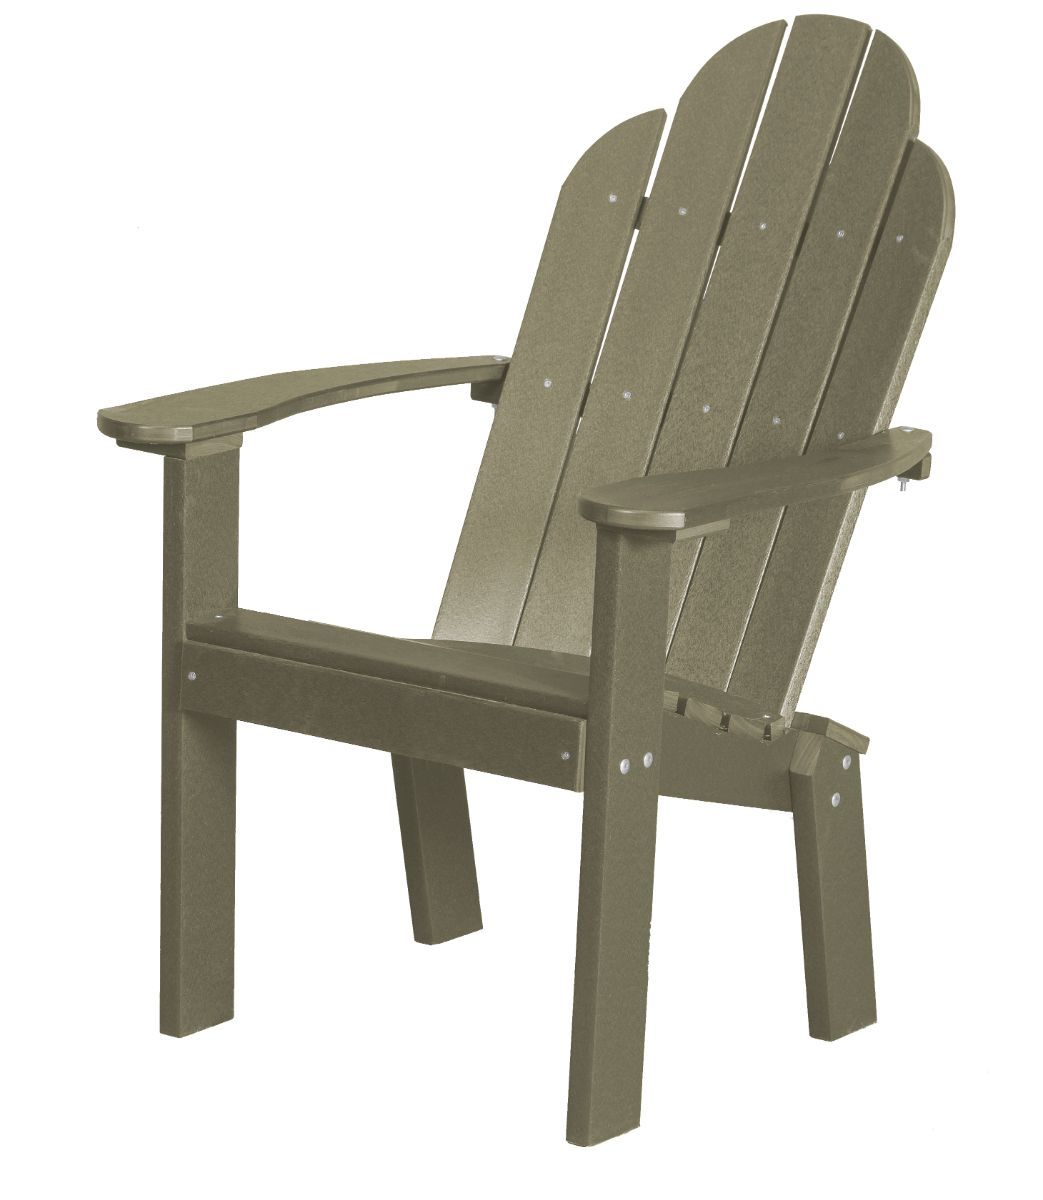 Olive Odessa Outdoor Dining Chair